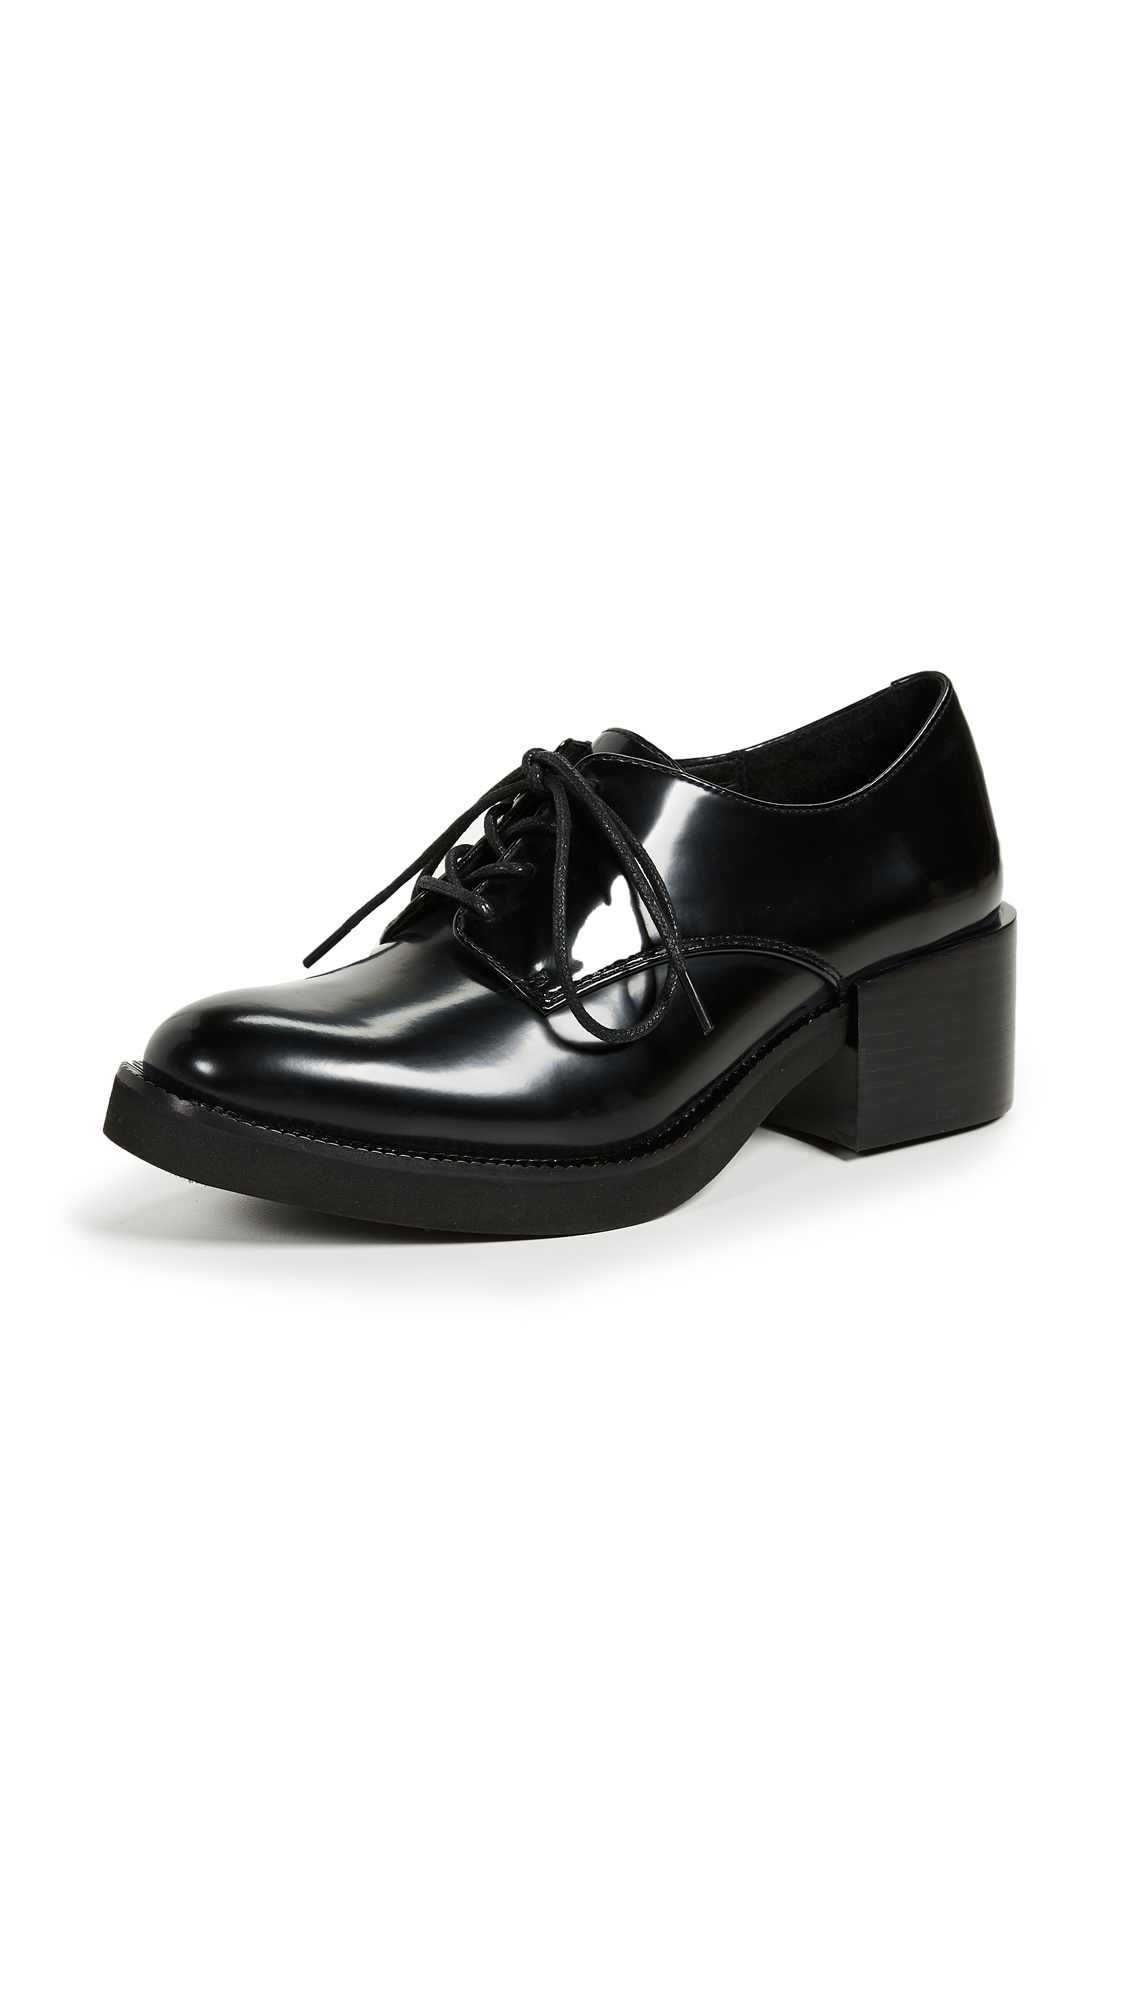 Jeffrey Campbell Patrice Platform Oxfords - Black Box